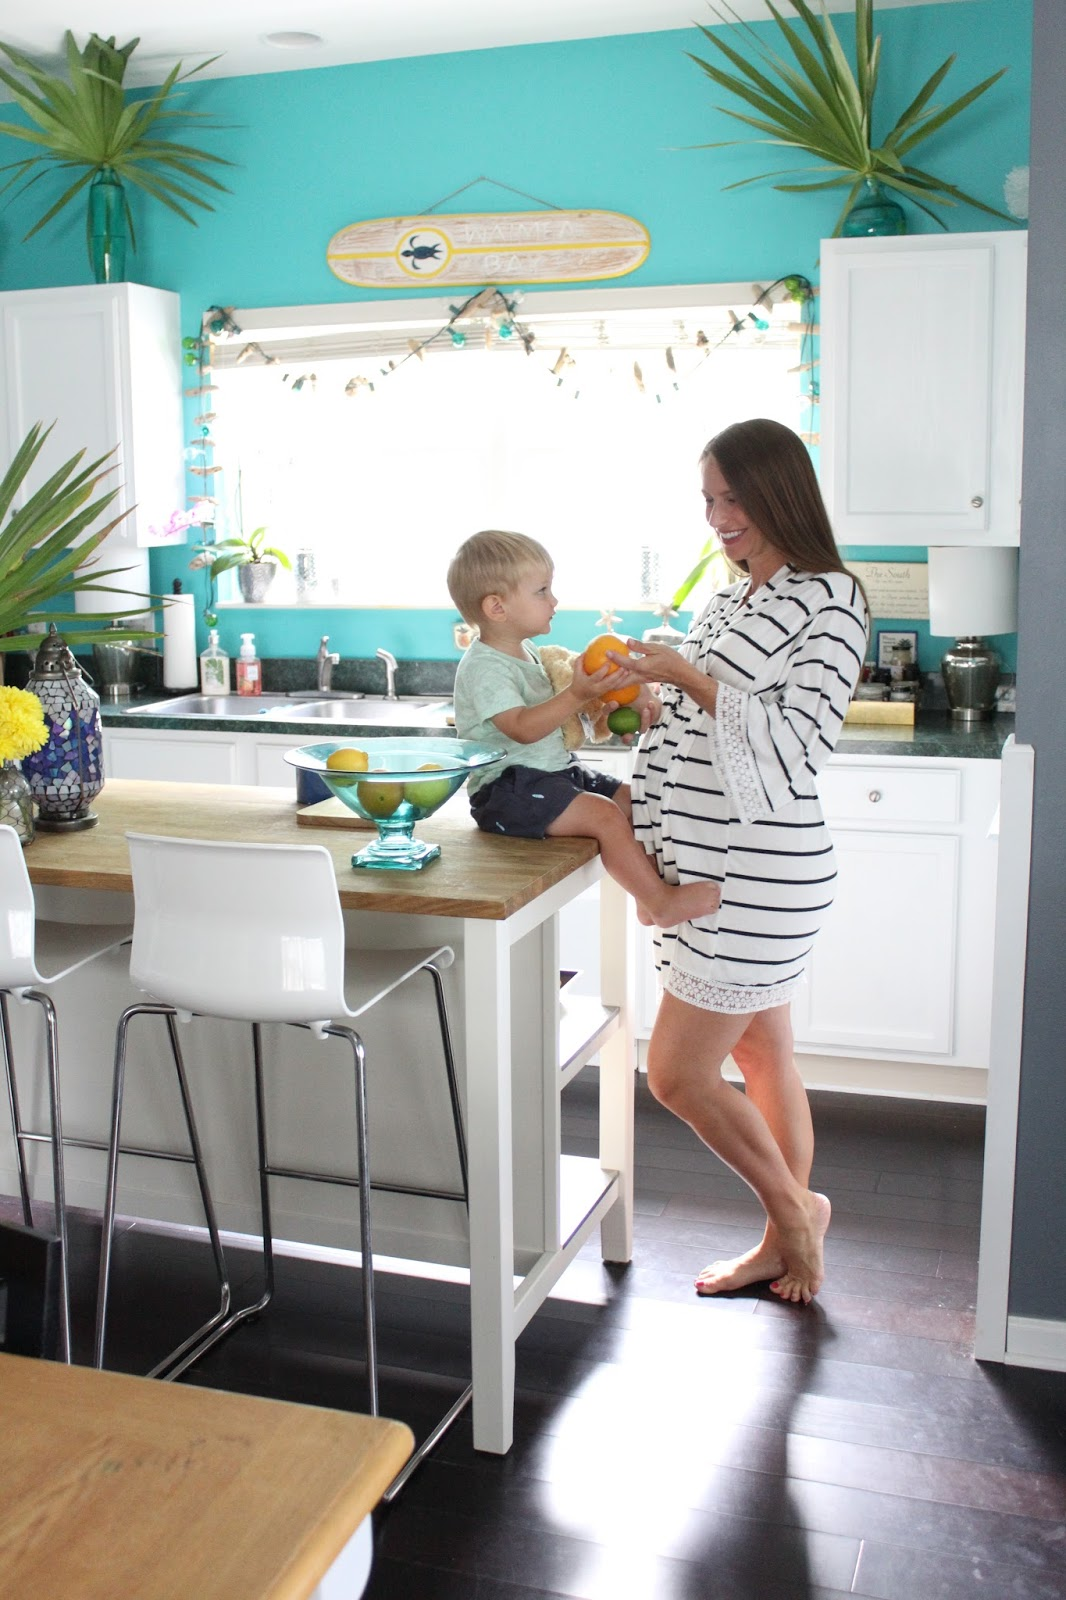 Beach House DIY: Painting Kitchen Cabinets